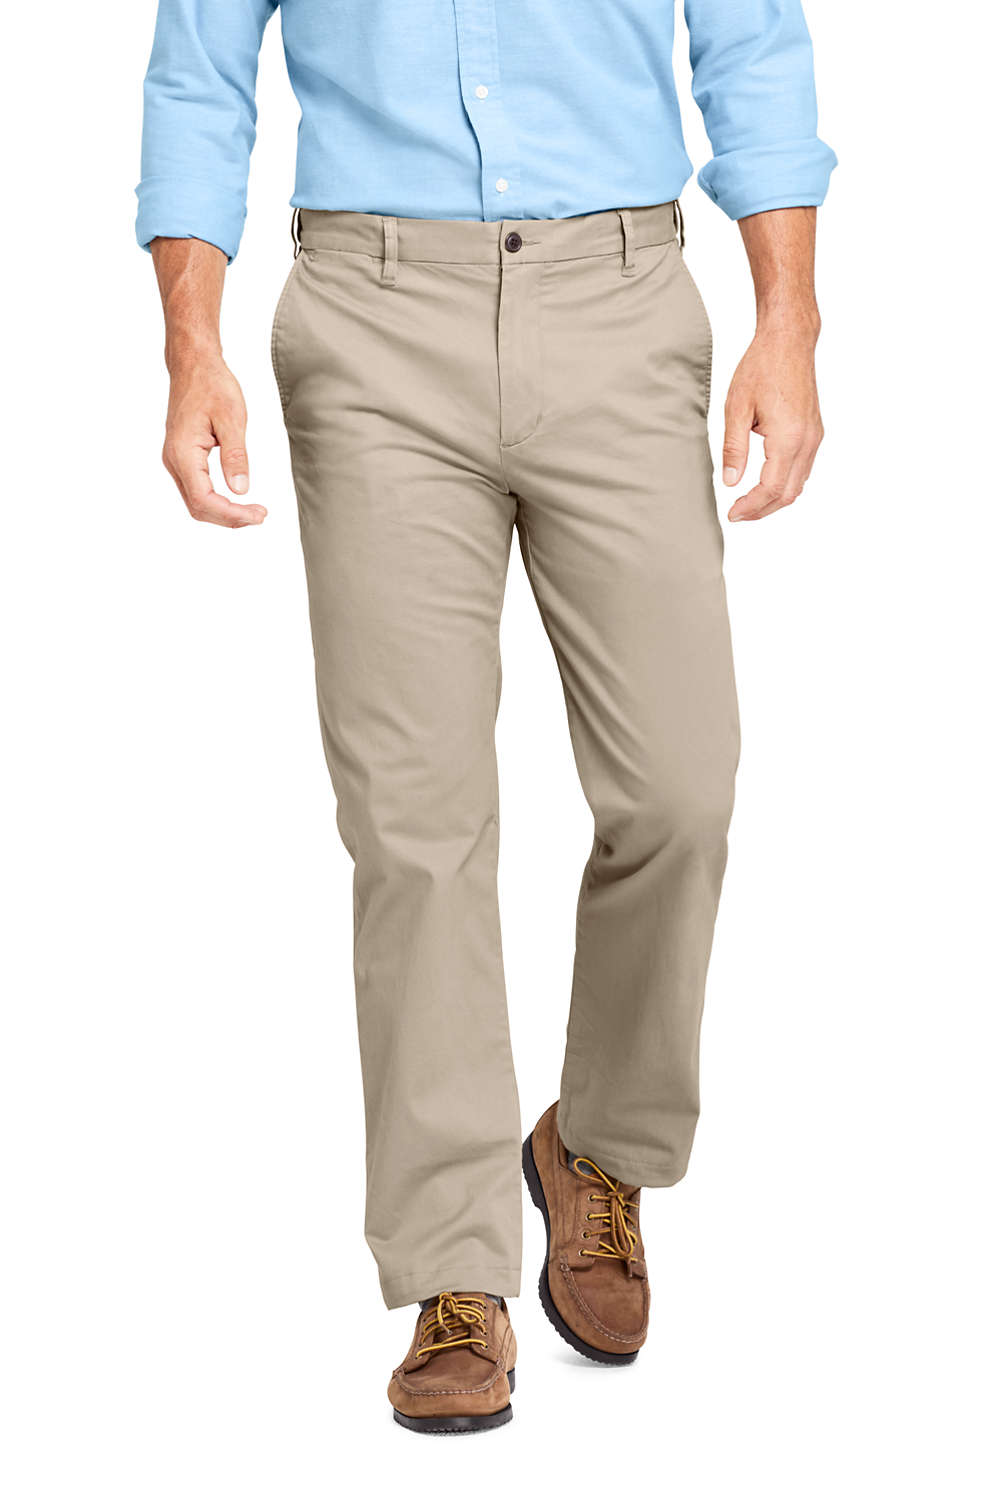 50% off detailed images well known Men's Comfort Waist Comfort-First Knockabout Chino Pants